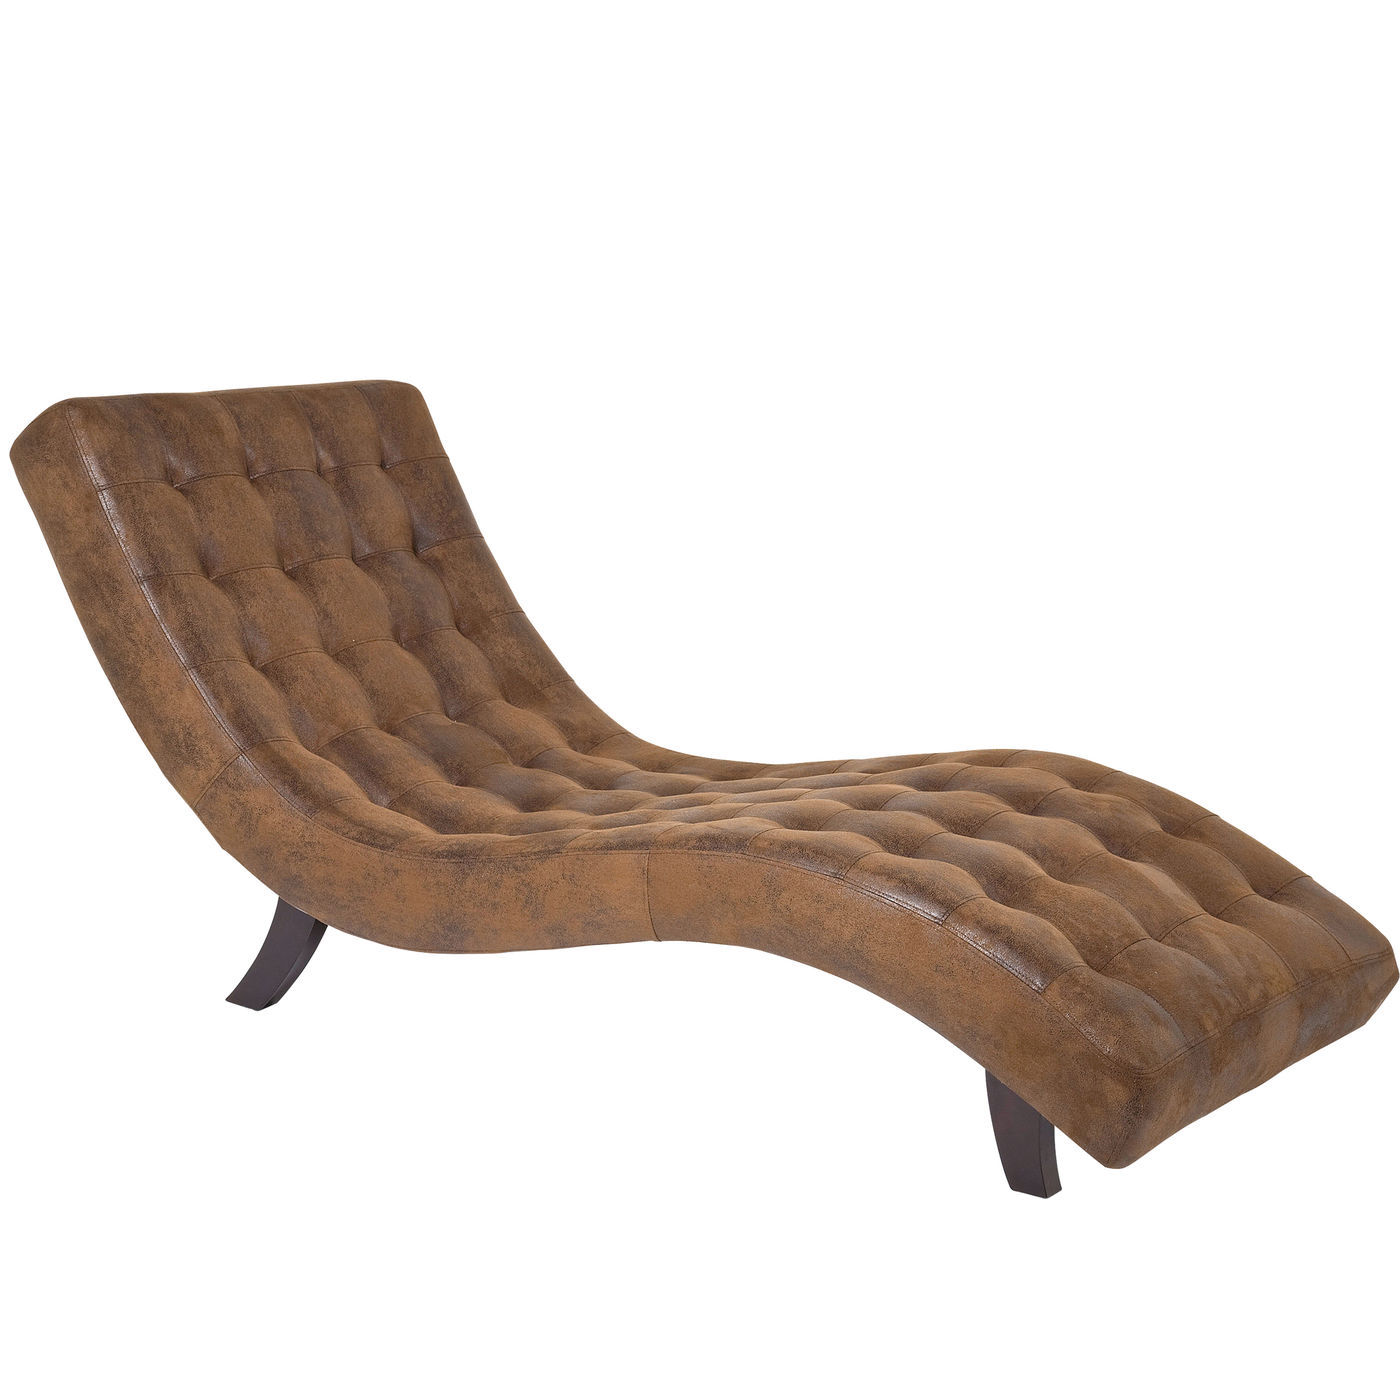 Image of   KARE DESIGN Snake Vintage Eco loungestol - brunt læderlook